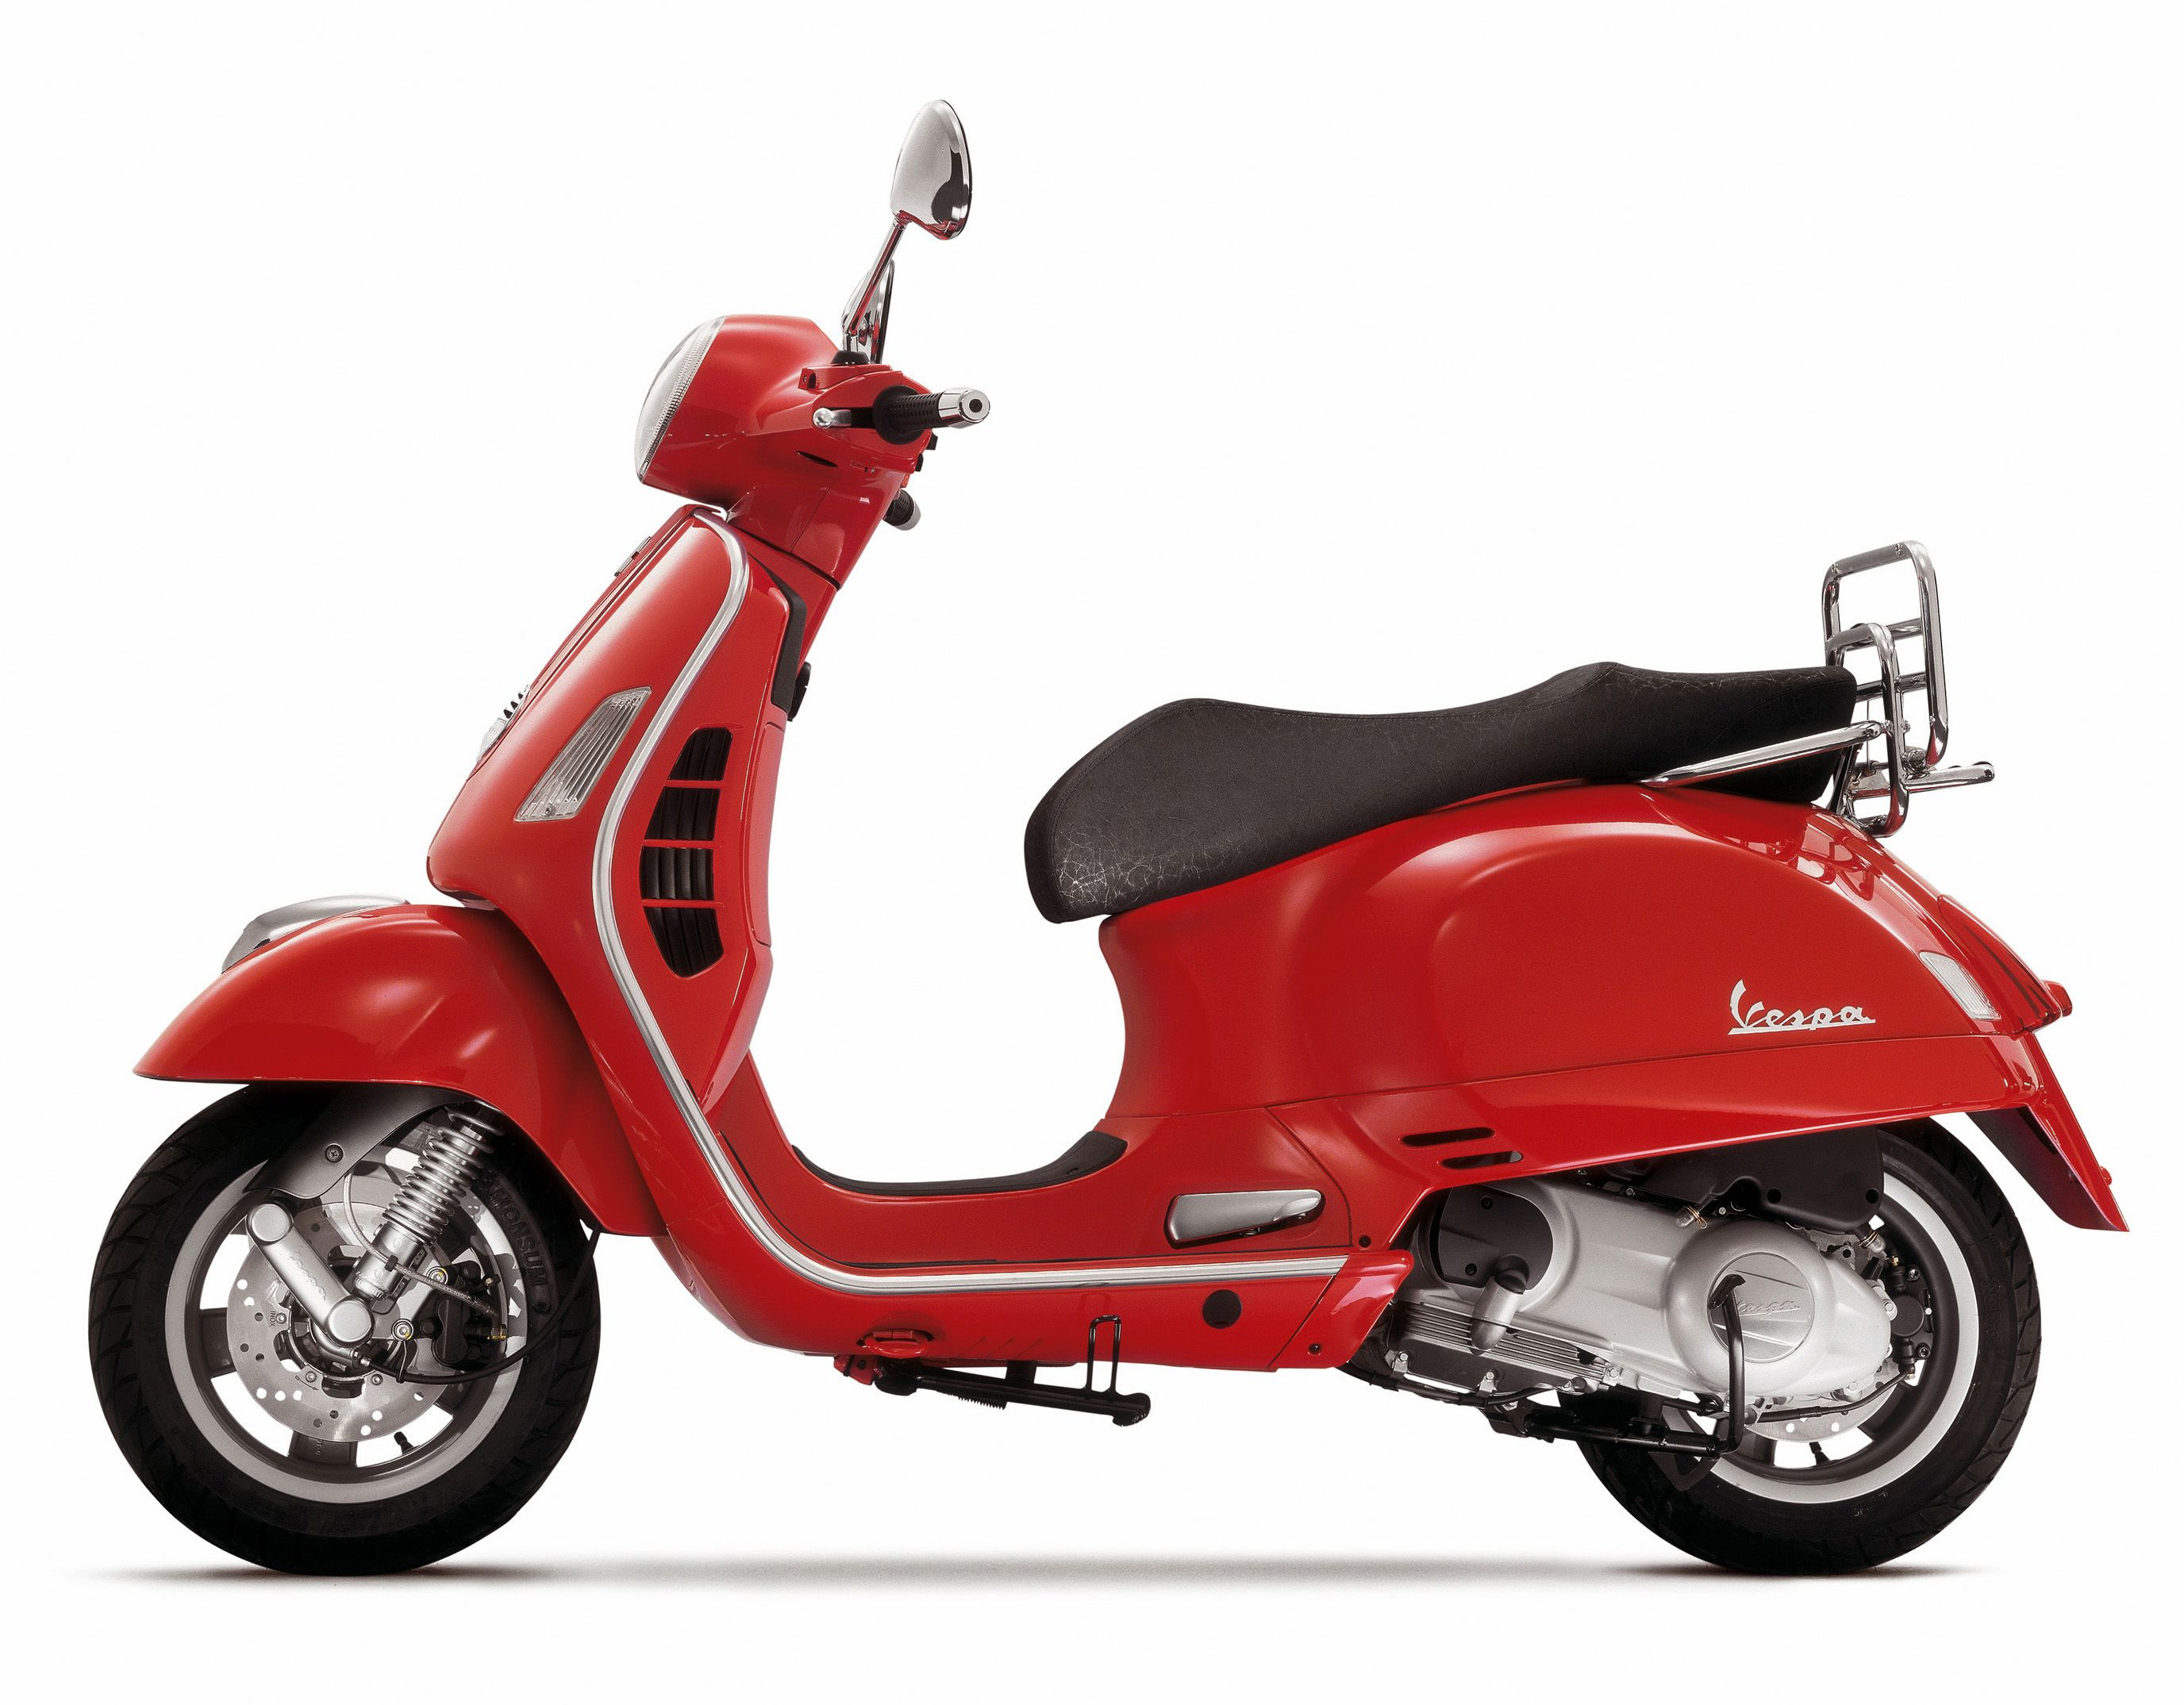 vespa gts 250 i fifty years after the launch of the vespa gs gran sport vespa. Black Bedroom Furniture Sets. Home Design Ideas